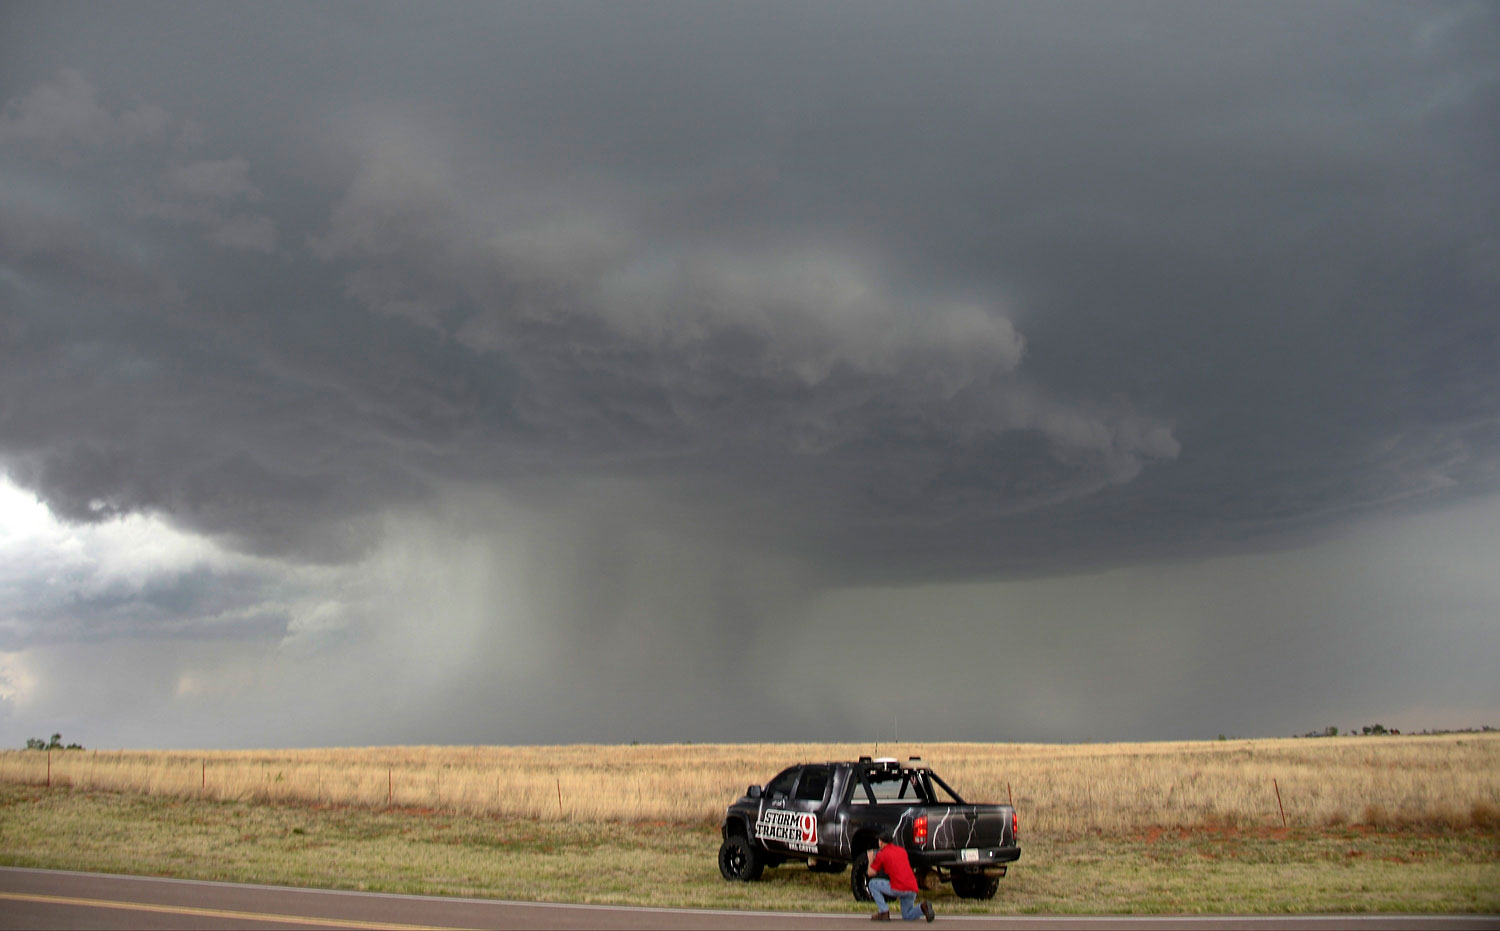 A storm chaser photographer looks at thunderstorms supercells passing through areas in Vinson, Oklahoma late April 23, 2014. The thunder storms on were a precursor of what's forecast for this coming weekend.